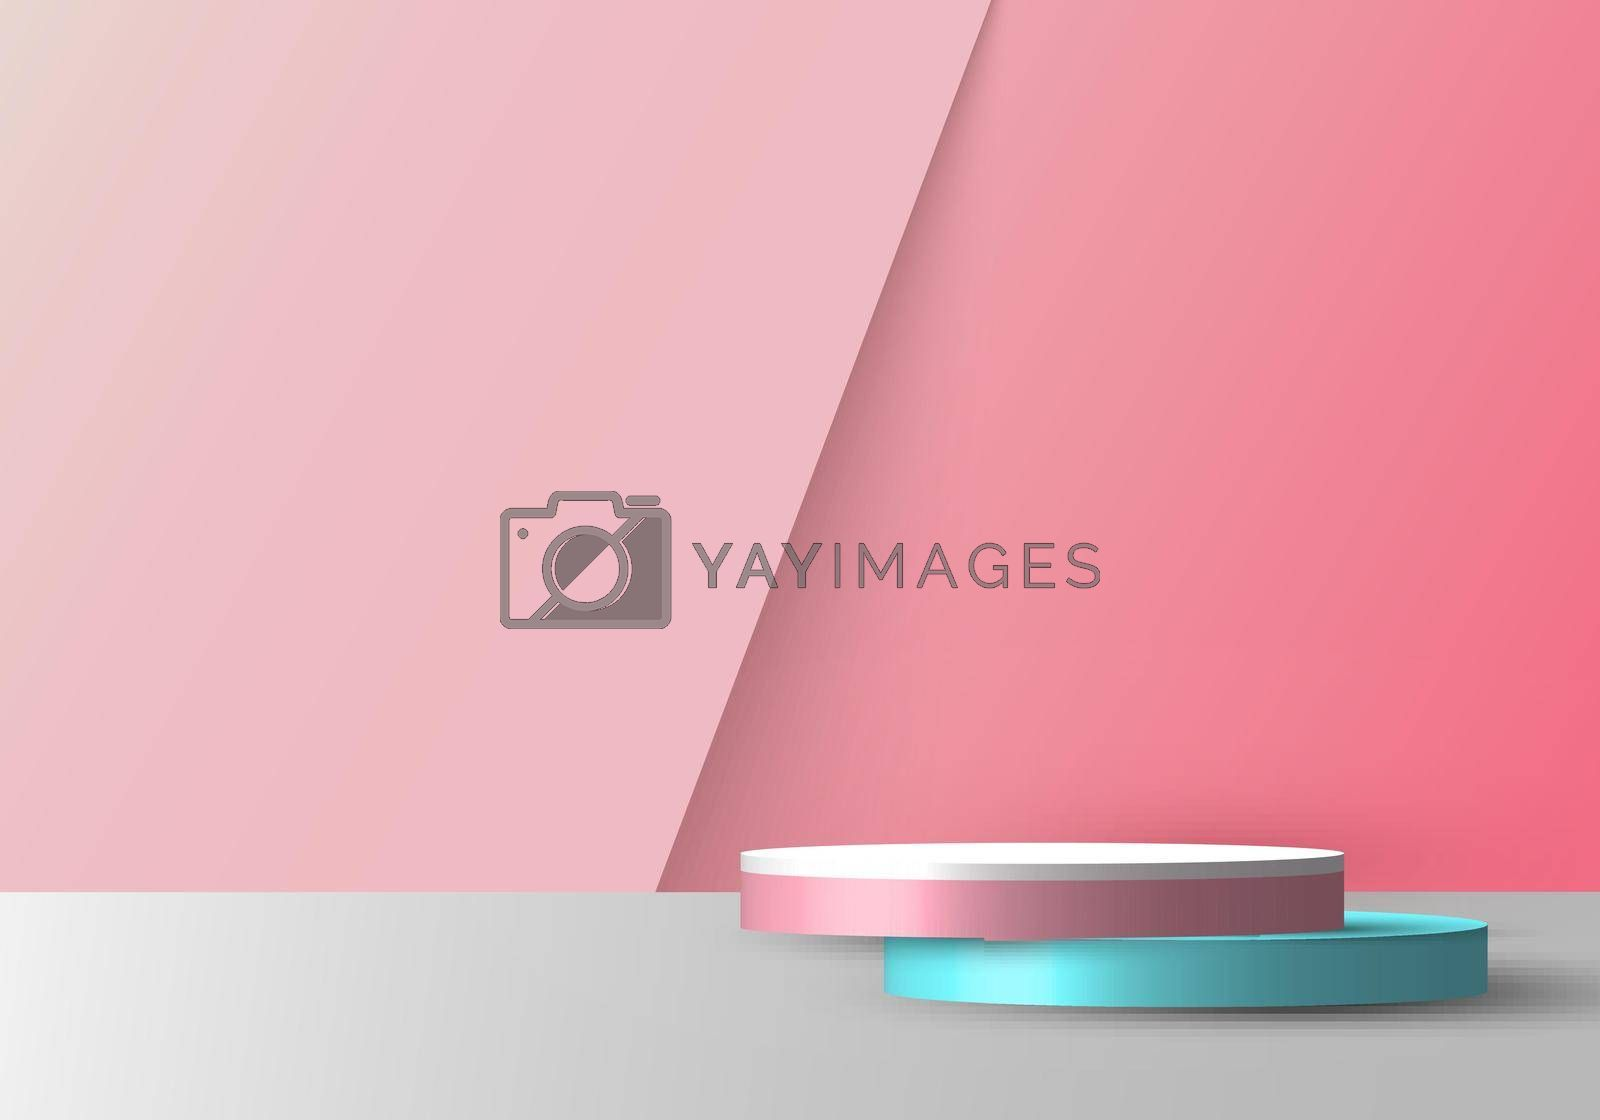 3D realistic empty pink, blue and white round pedestal mockup overlapped on soft pink backdrop. Stage floor for your graphic. Studio room showcase of modern interior design. Vector illustration